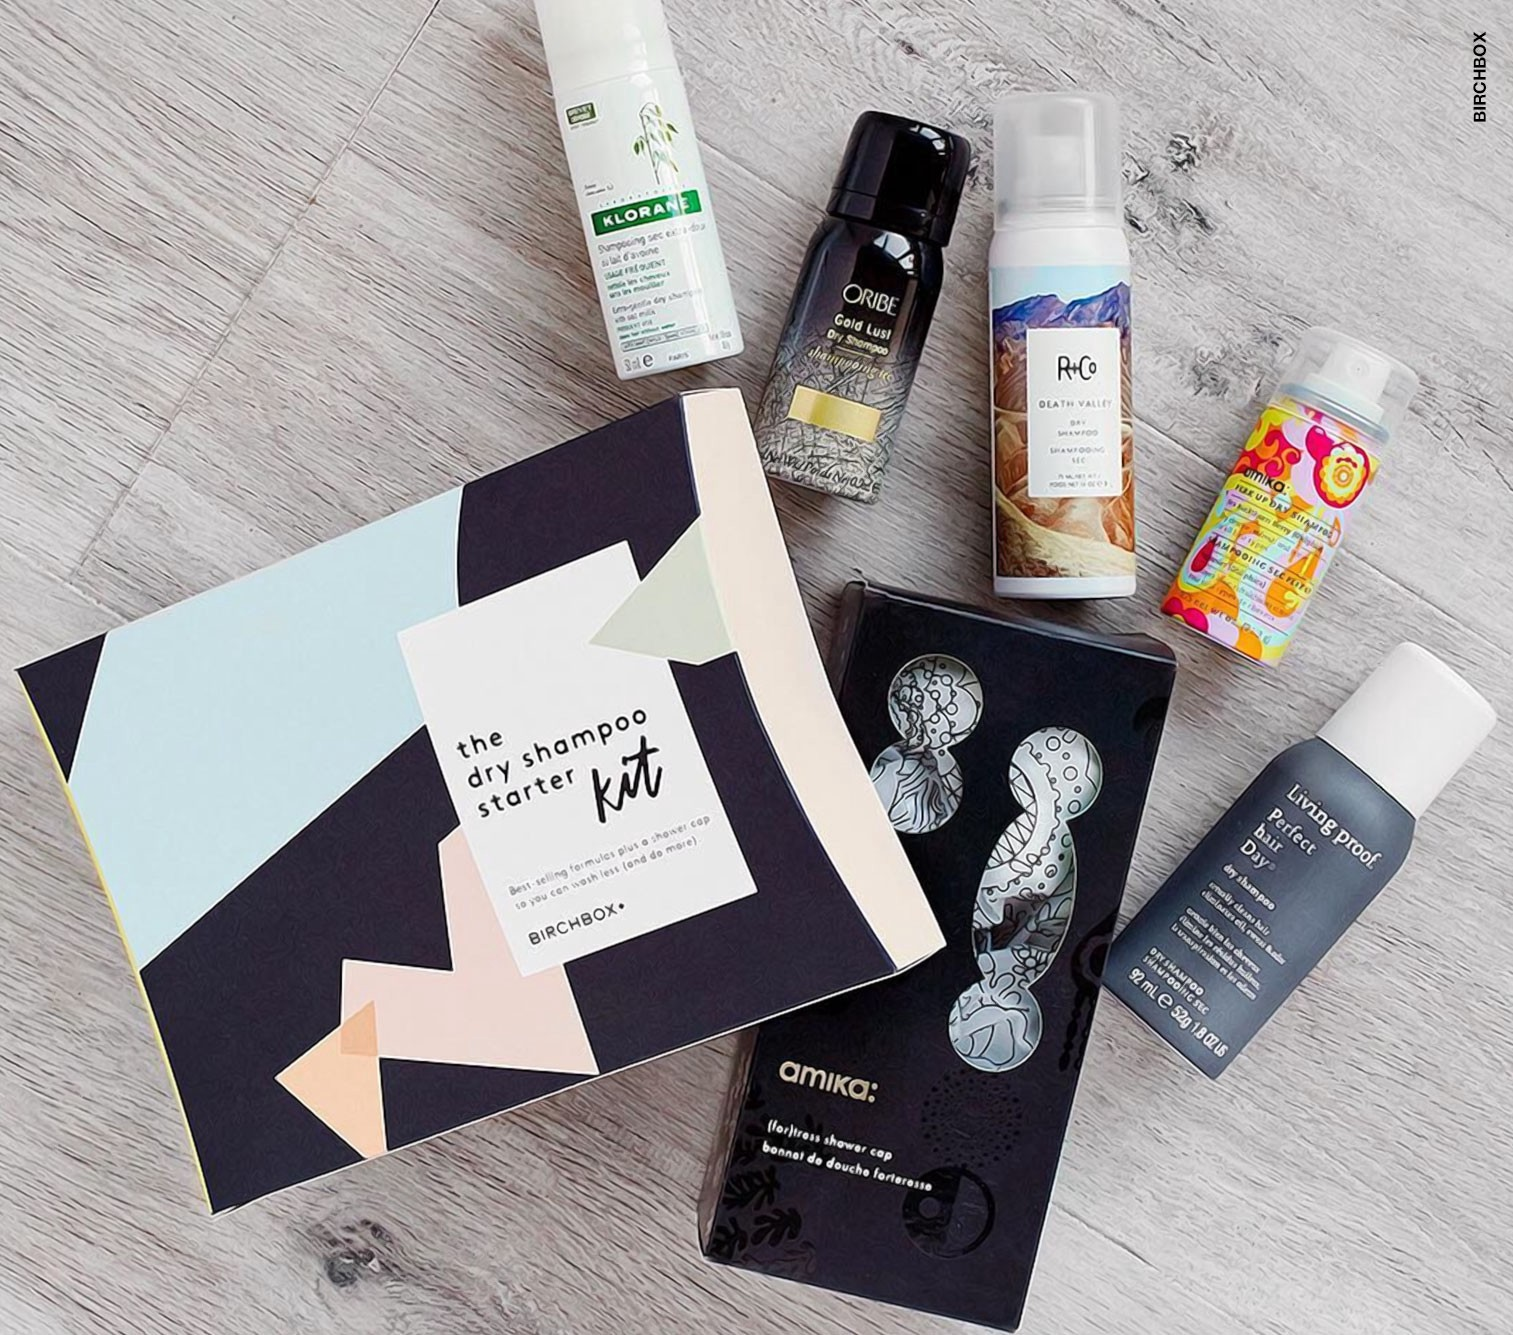 How Birchbox Amplifies Social Interactions That Inspire And Acquire